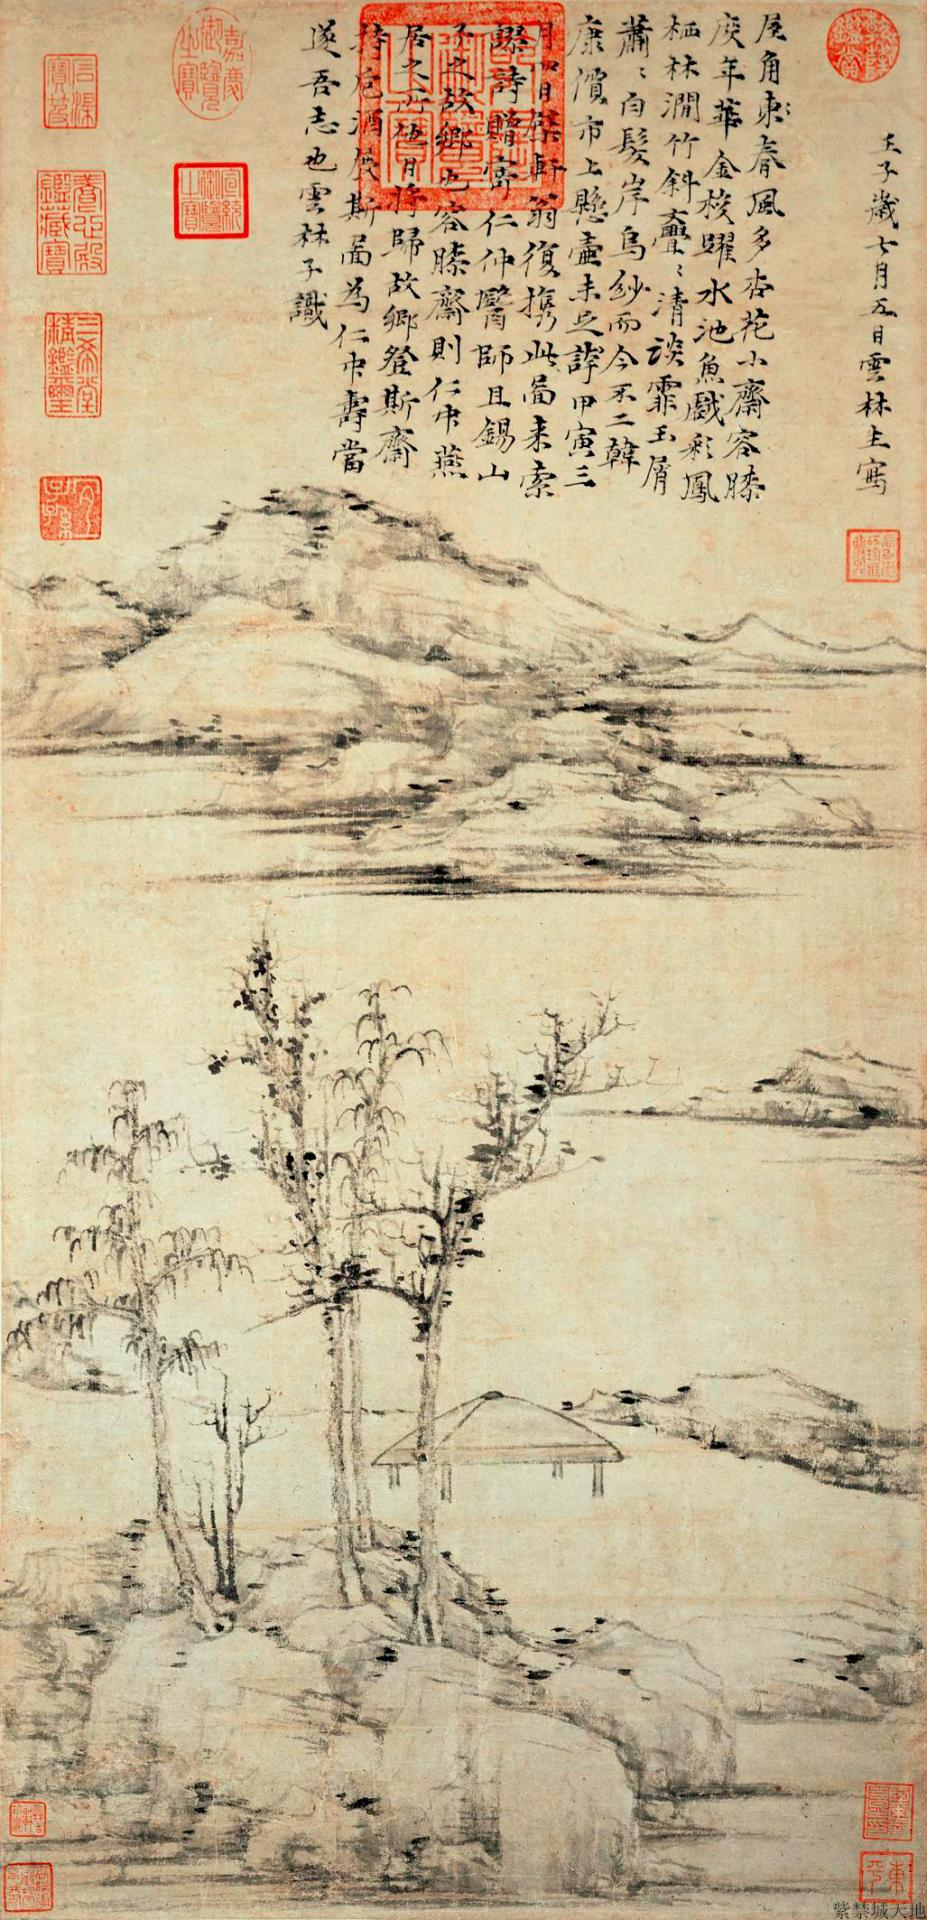 92f732659 Zhu Da concludes with a powerful vision of an apparent catastrophe (fig.  5d) Signature of artist in lower left corner: 'Bada Shanren' (half removed).